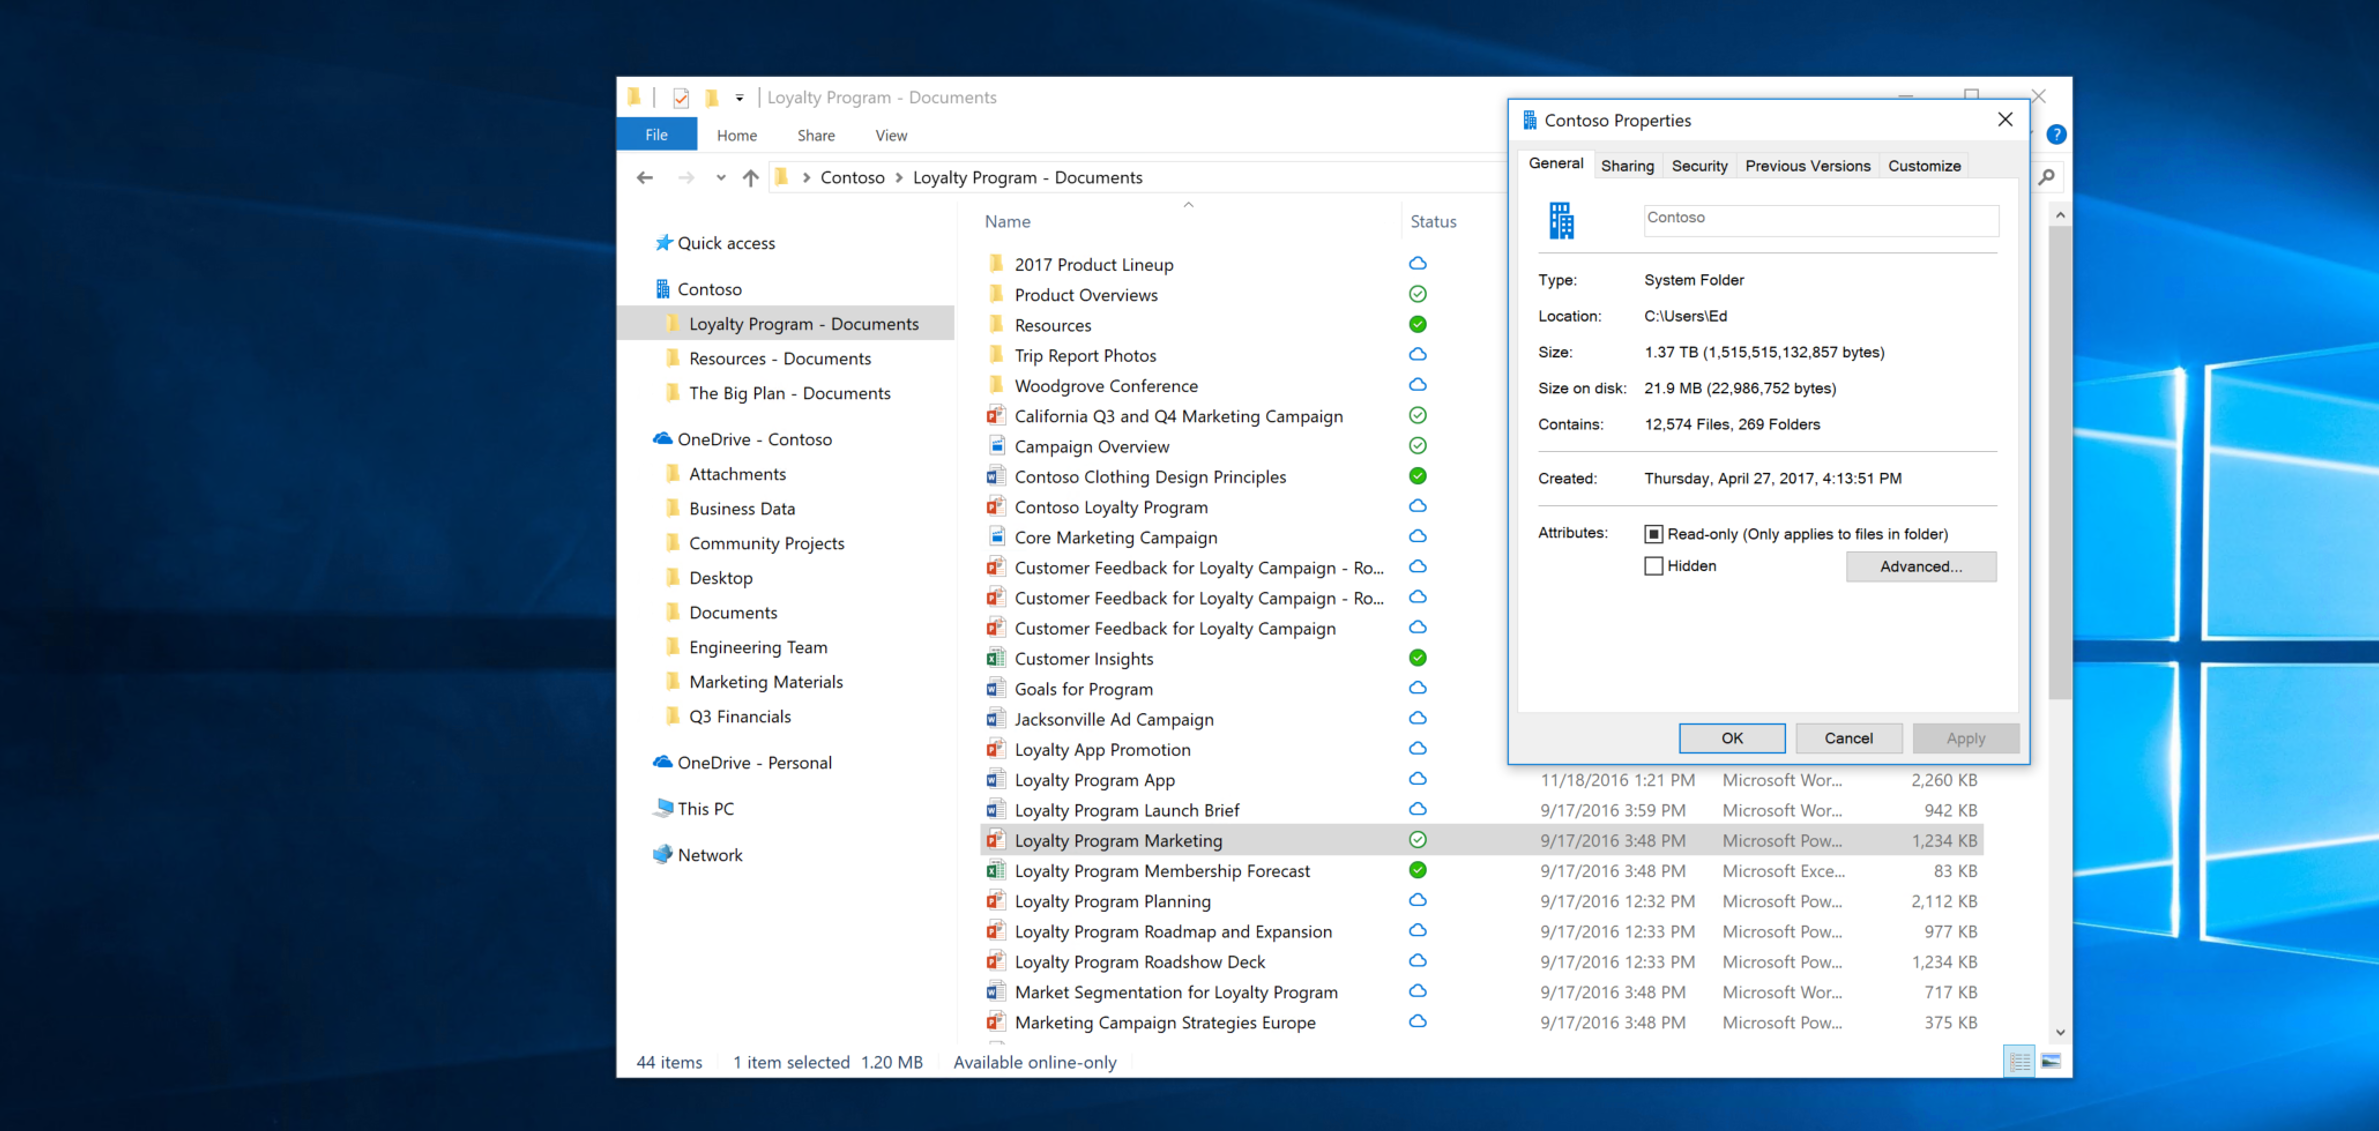 how to open onedrive from windows